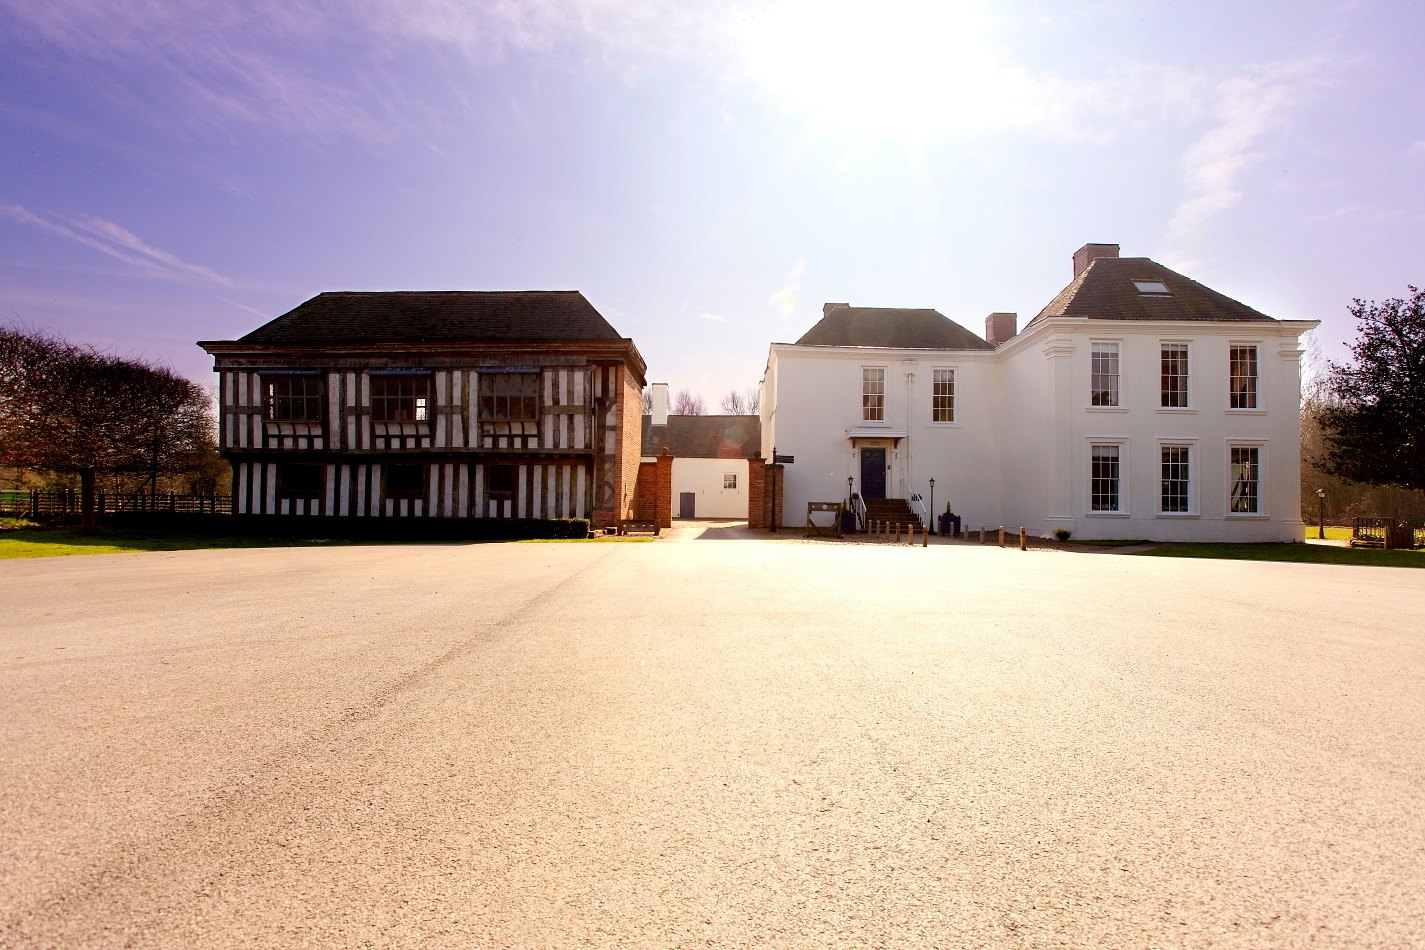 Front Facade of Middleton Hall with the Tudor timber framed Jettied building on the left and the Tudor Great Hall, now covered in white Georgian render, on the left